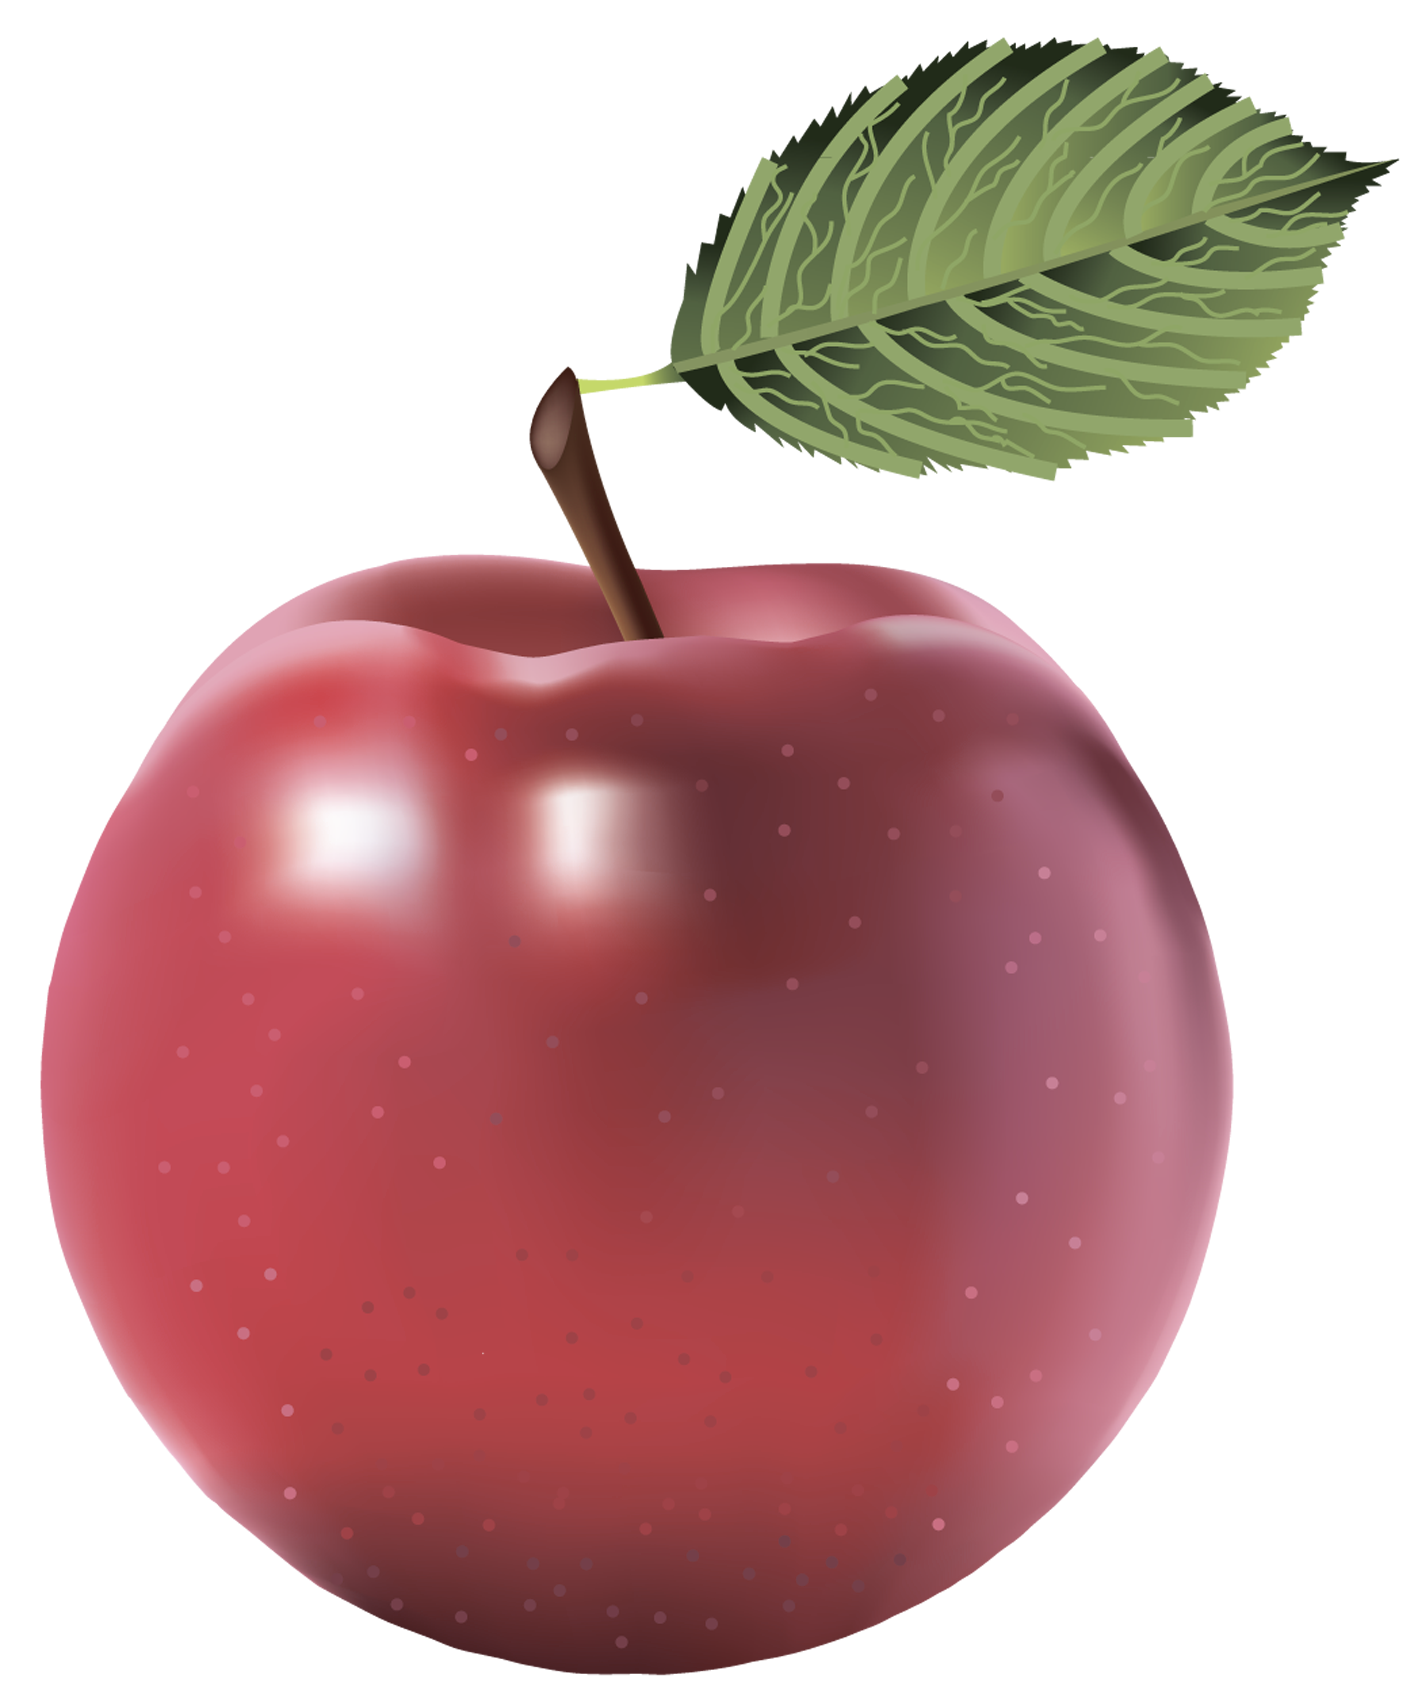 Apples border png transparent background. Large red painted apple